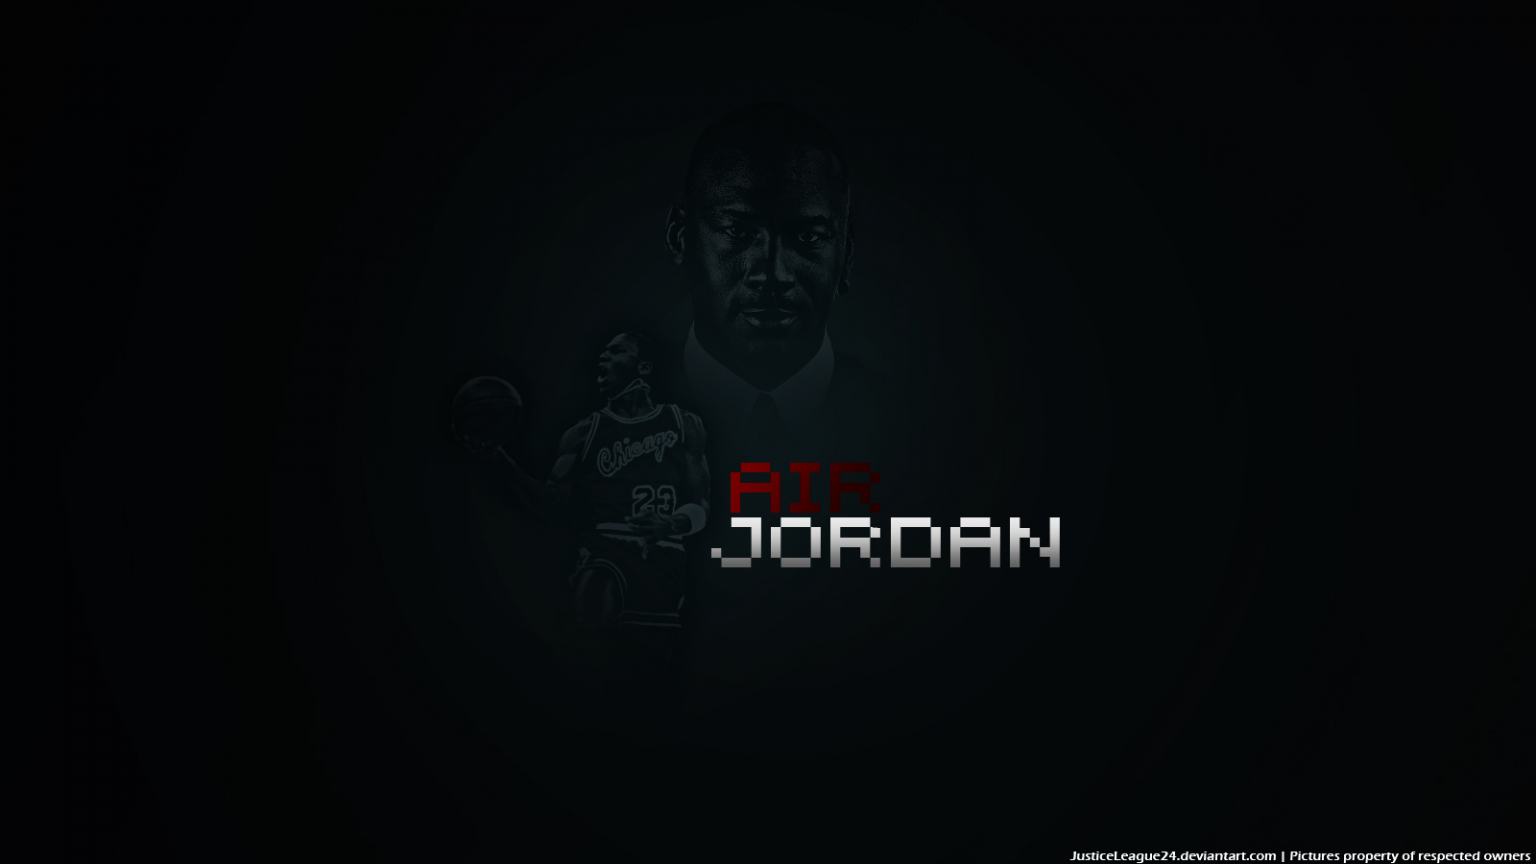 Free Download Jordan Wallpaper Logo Wwwhigh Definition Wallpapercom 1600x900 For Your Desktop Mobile Tablet Explore 50 Air Jordan Logo Wallpaper Hd Jumpman Wallpaper Air Jordan Wallpaper Jumpman Logo Hd Wallpaper